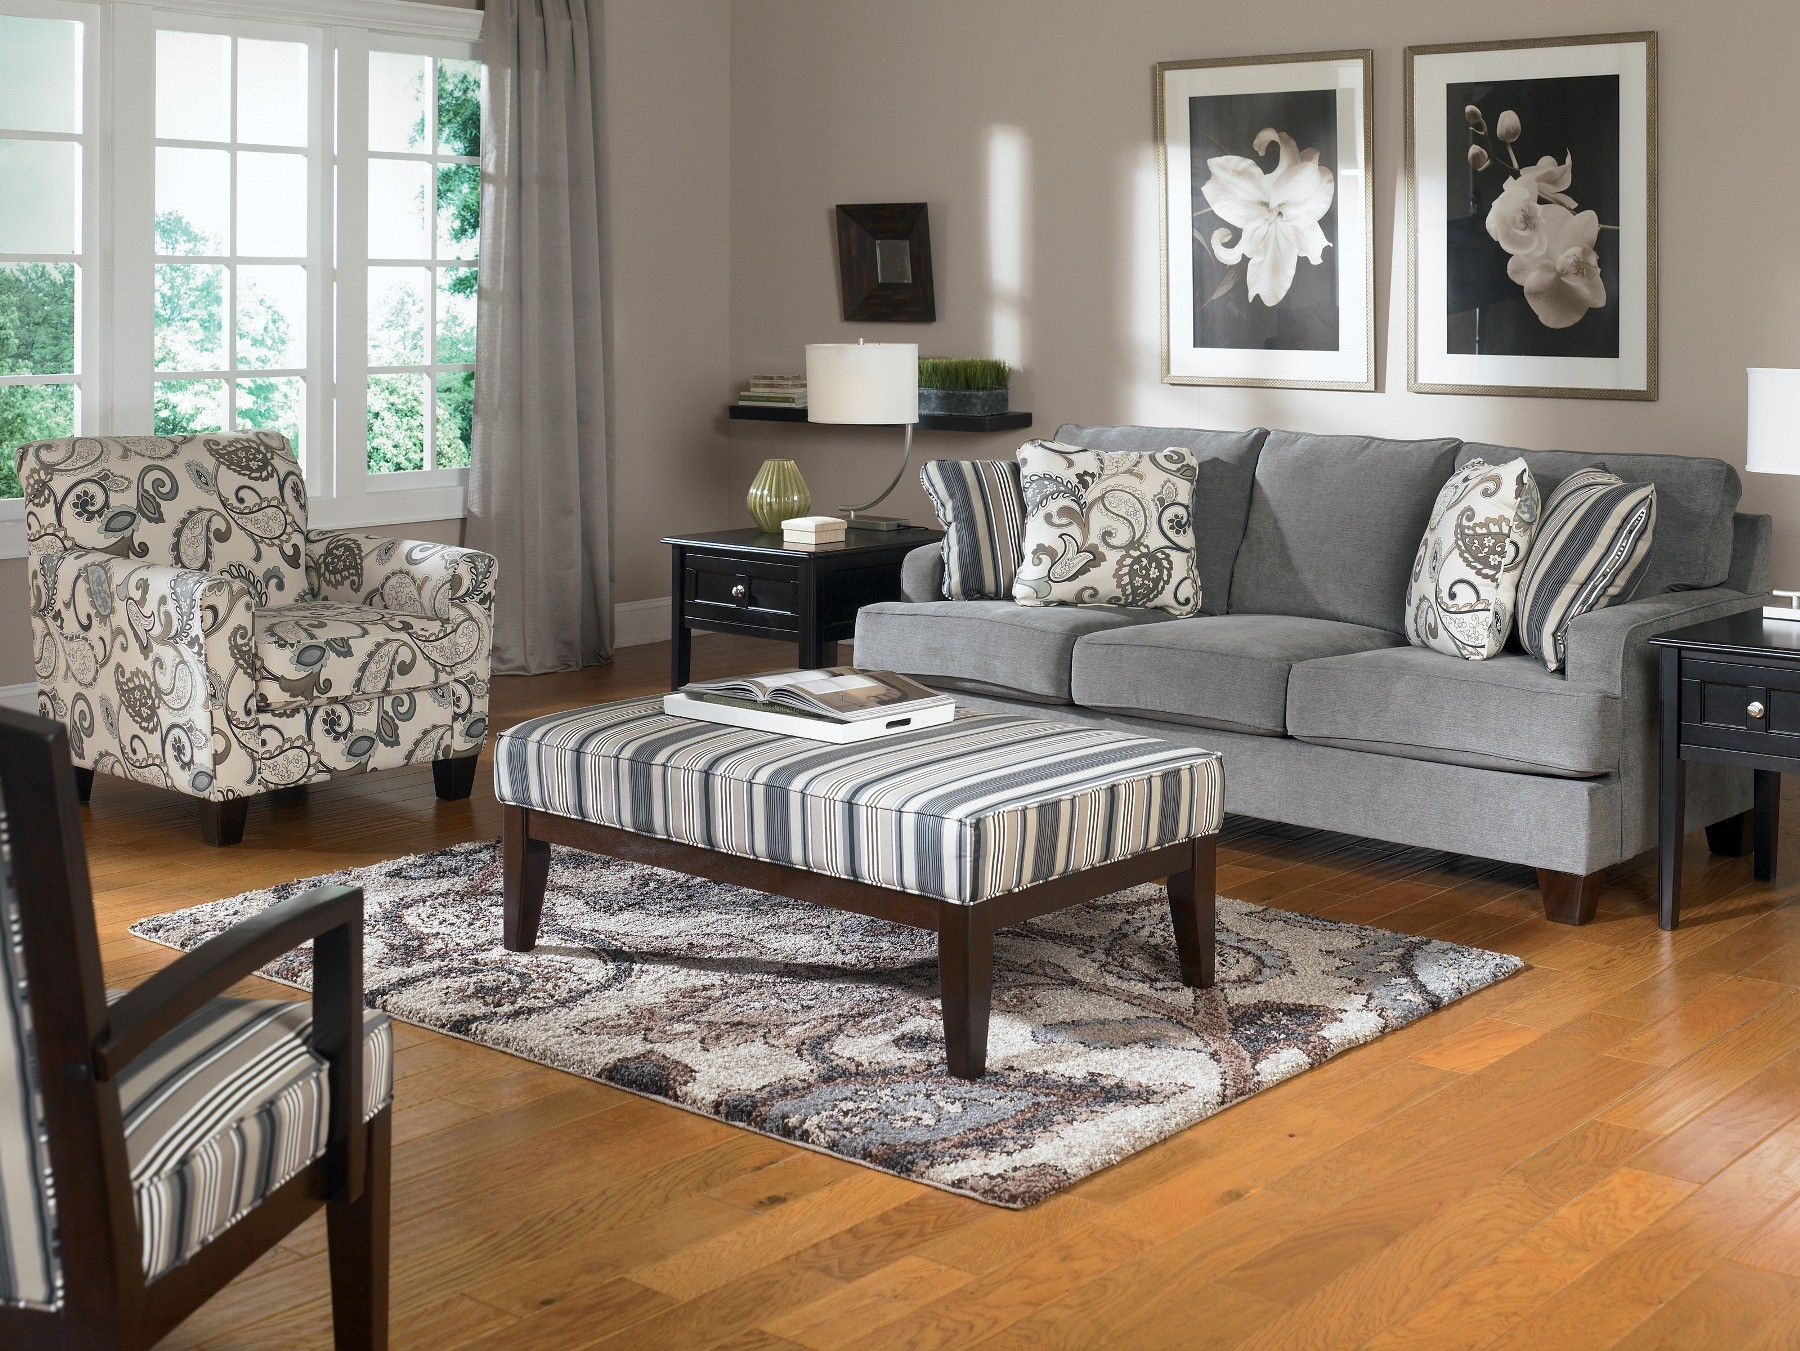 Yvette Steel Living Room Set From Ashley (77900)